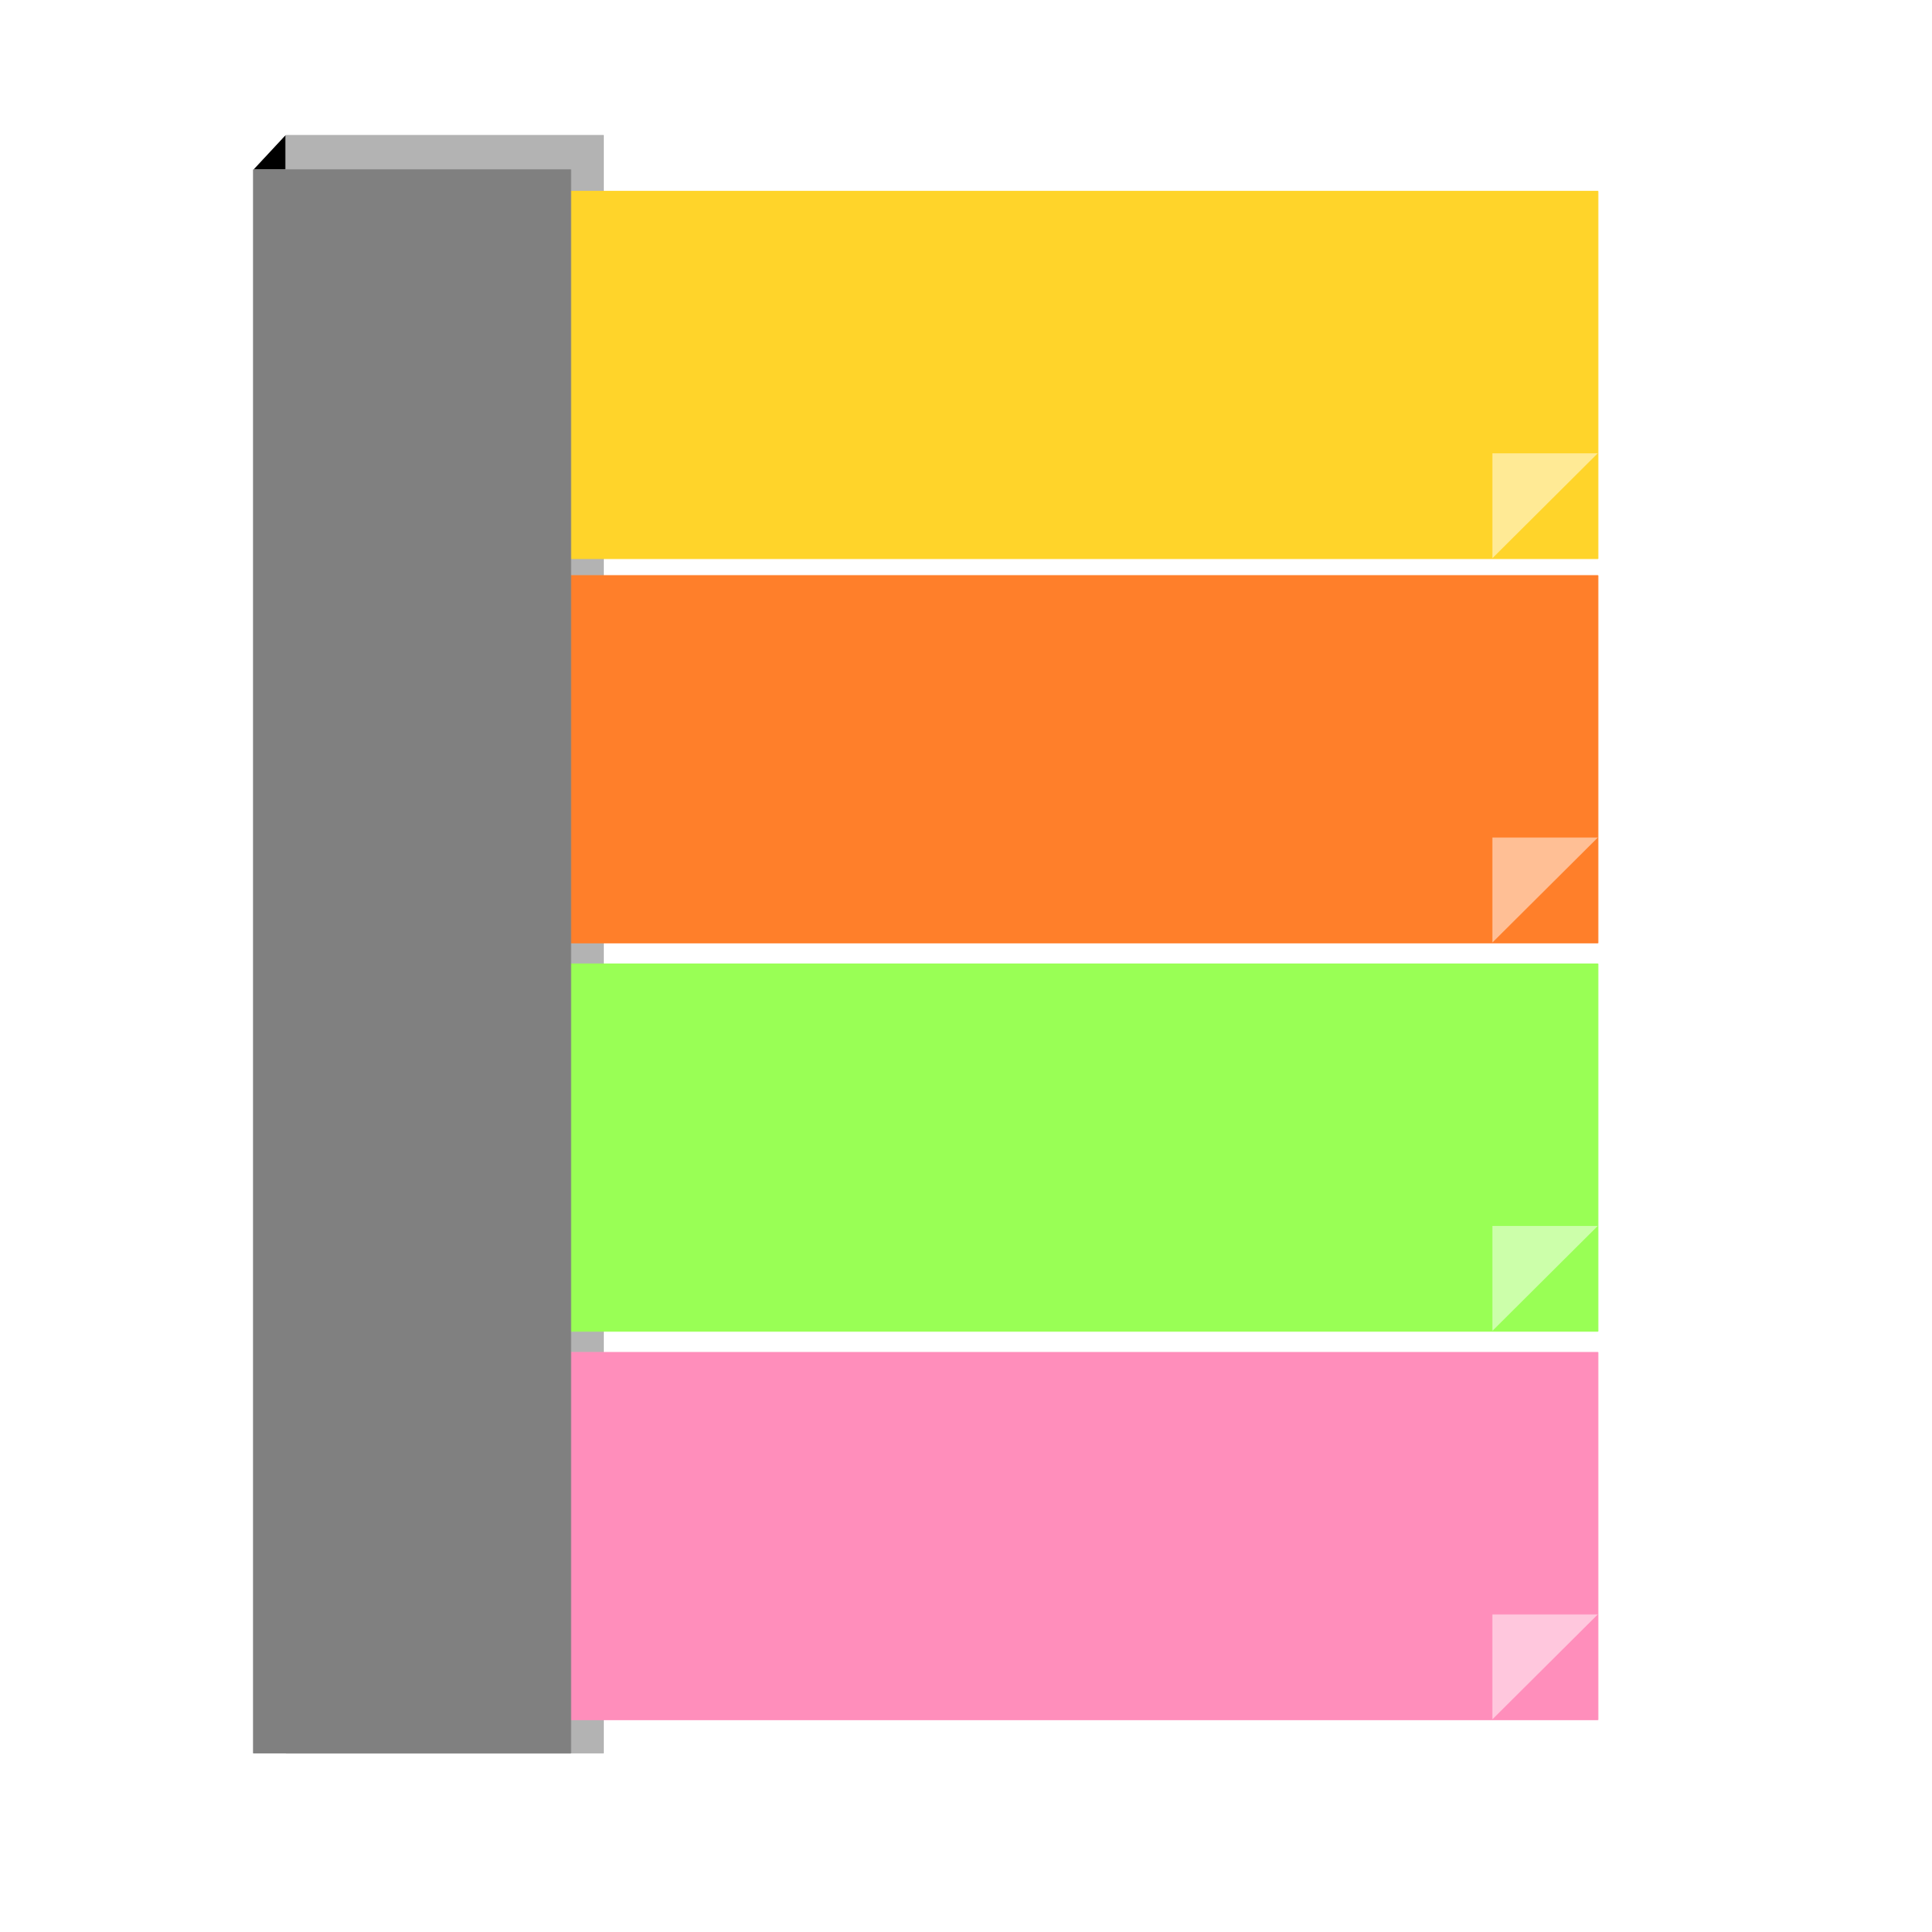 Orange sticky note png. Remixed notes assorted icons